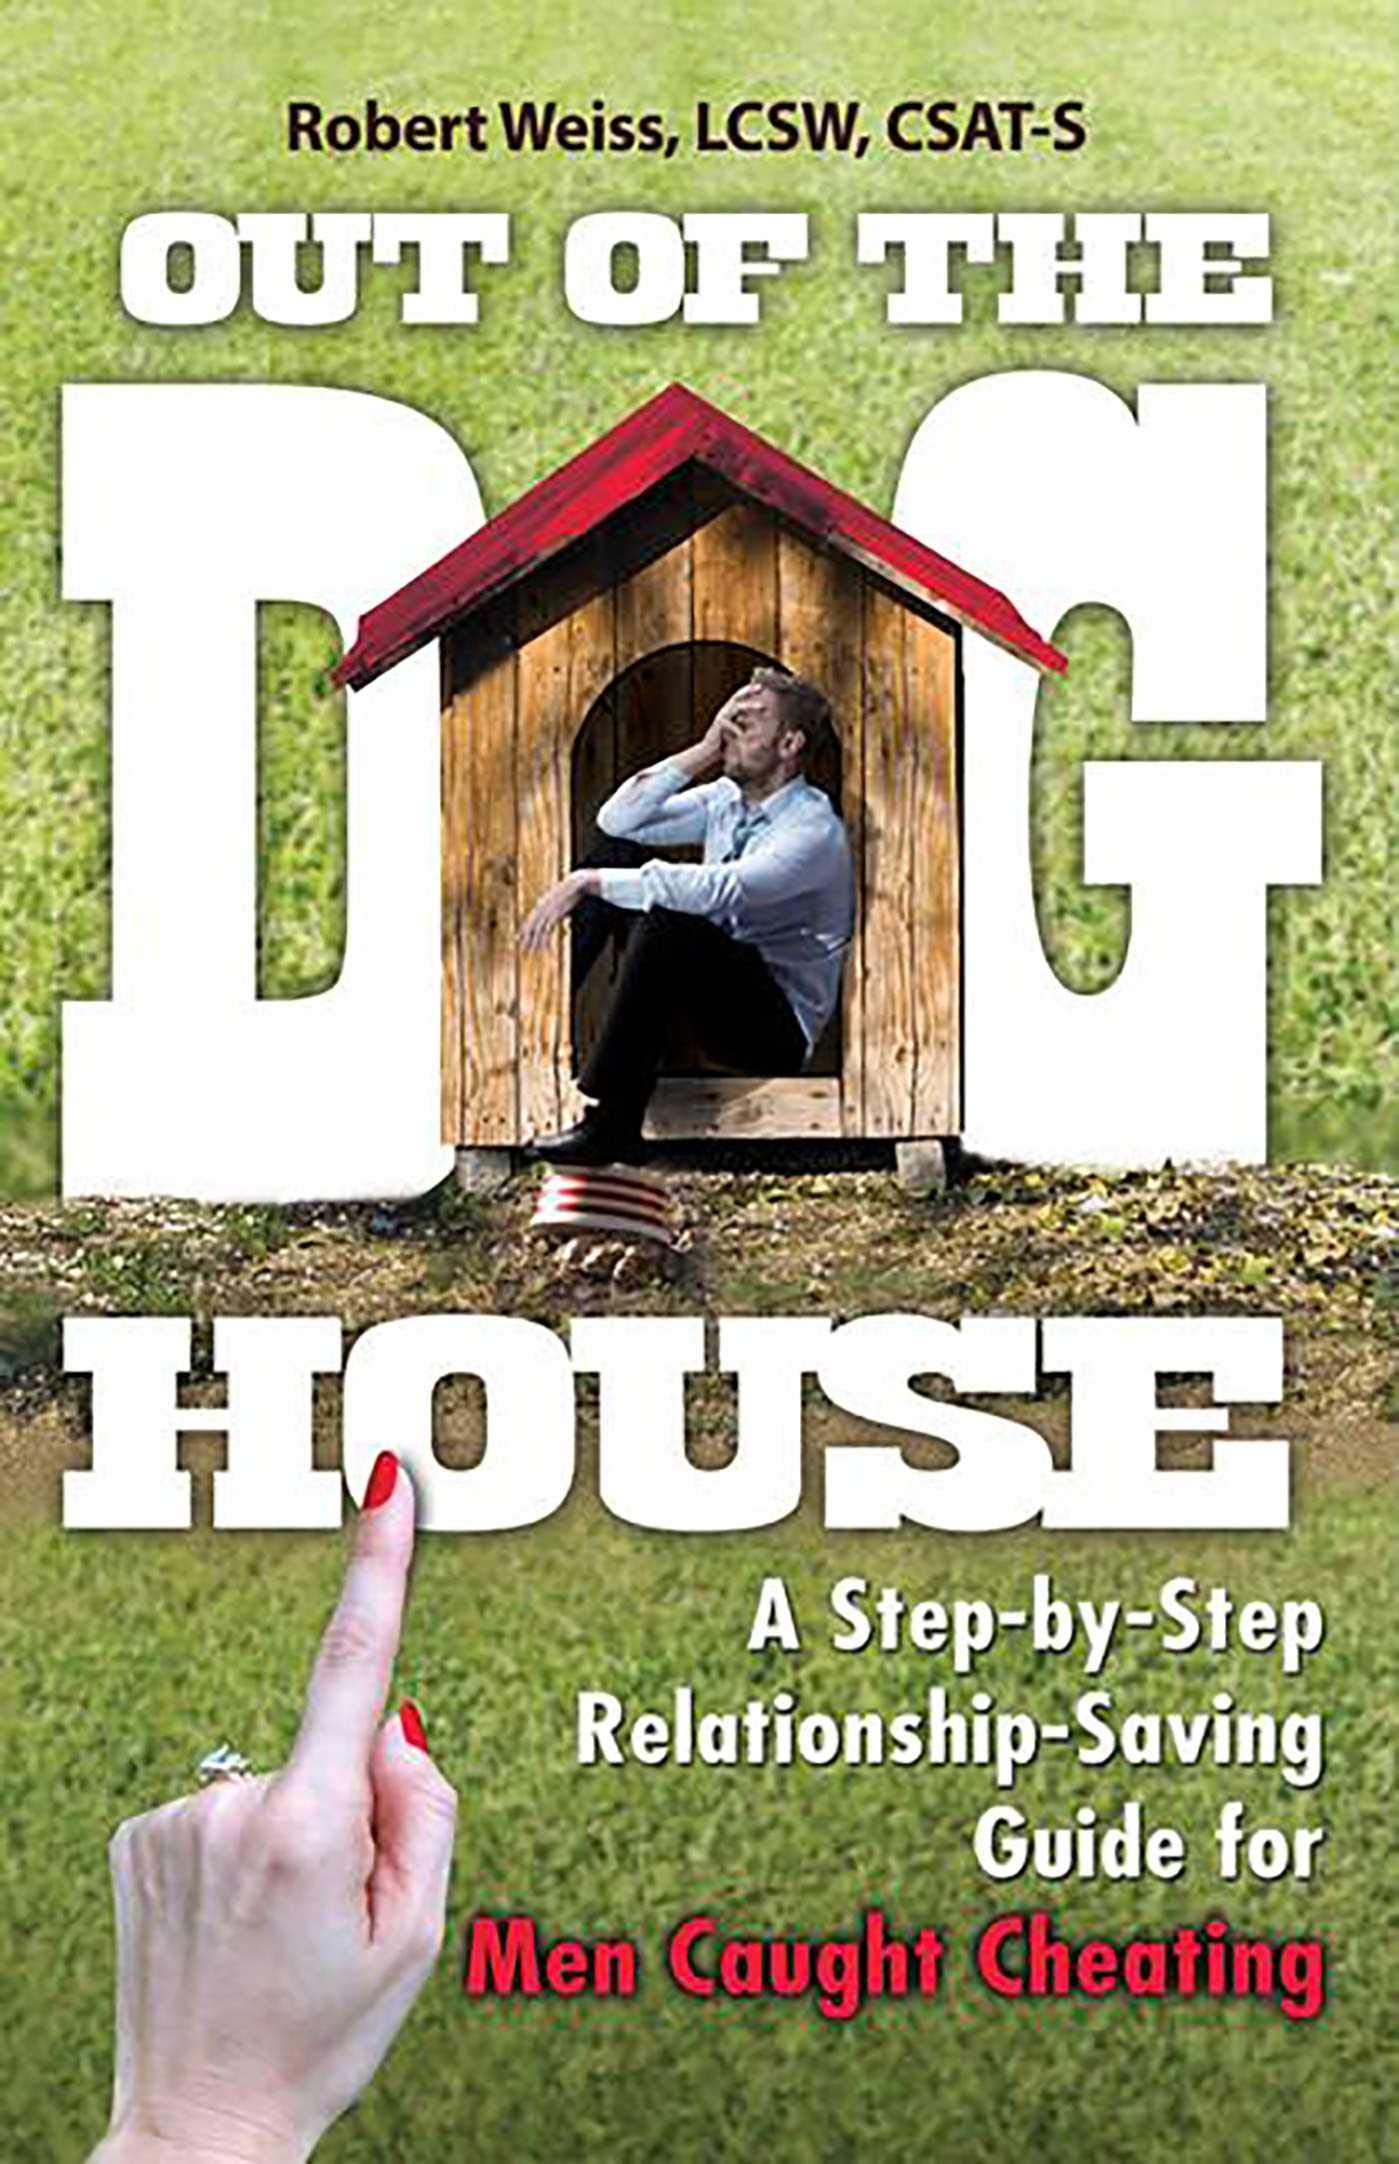 Out of the Doghouse: A Step-by-Step Relationship-Saving Guide for